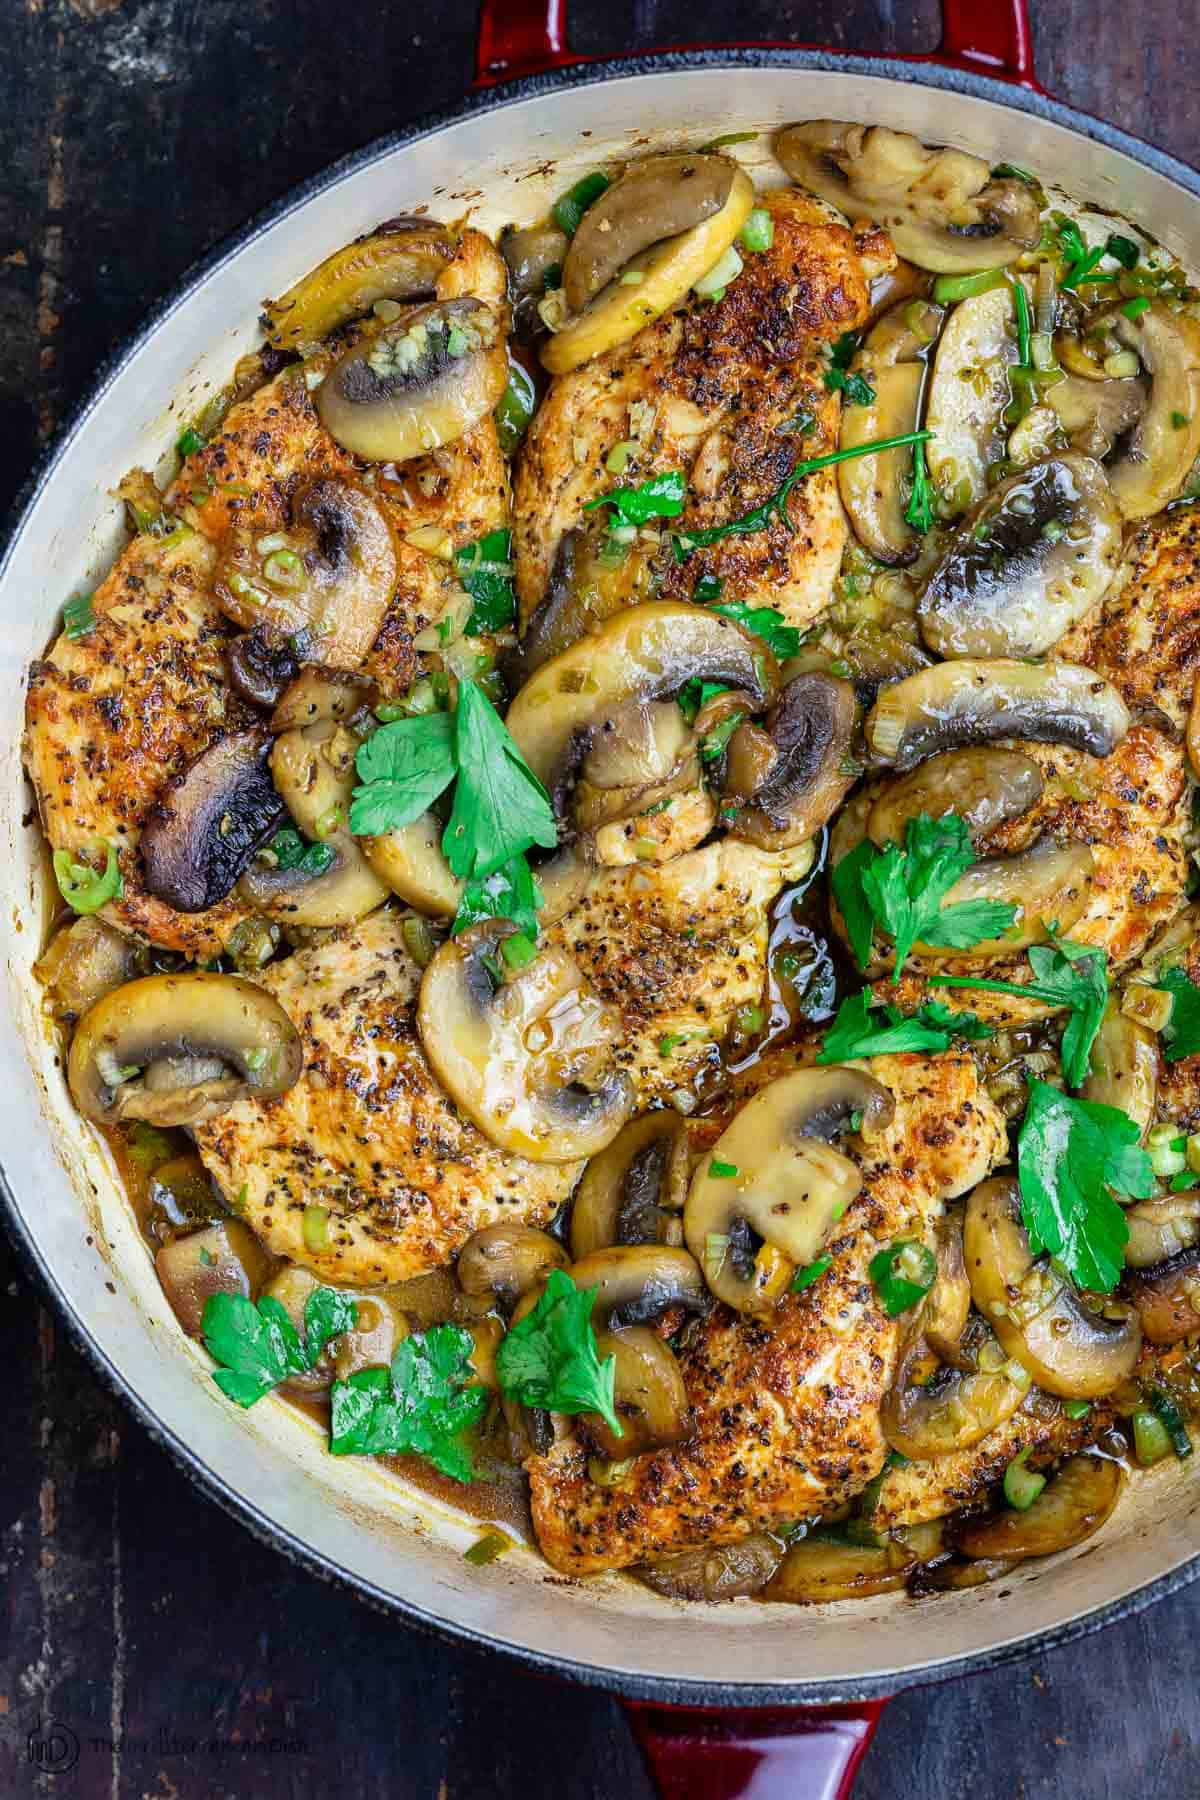 Chicken and Mushroom in Skillet